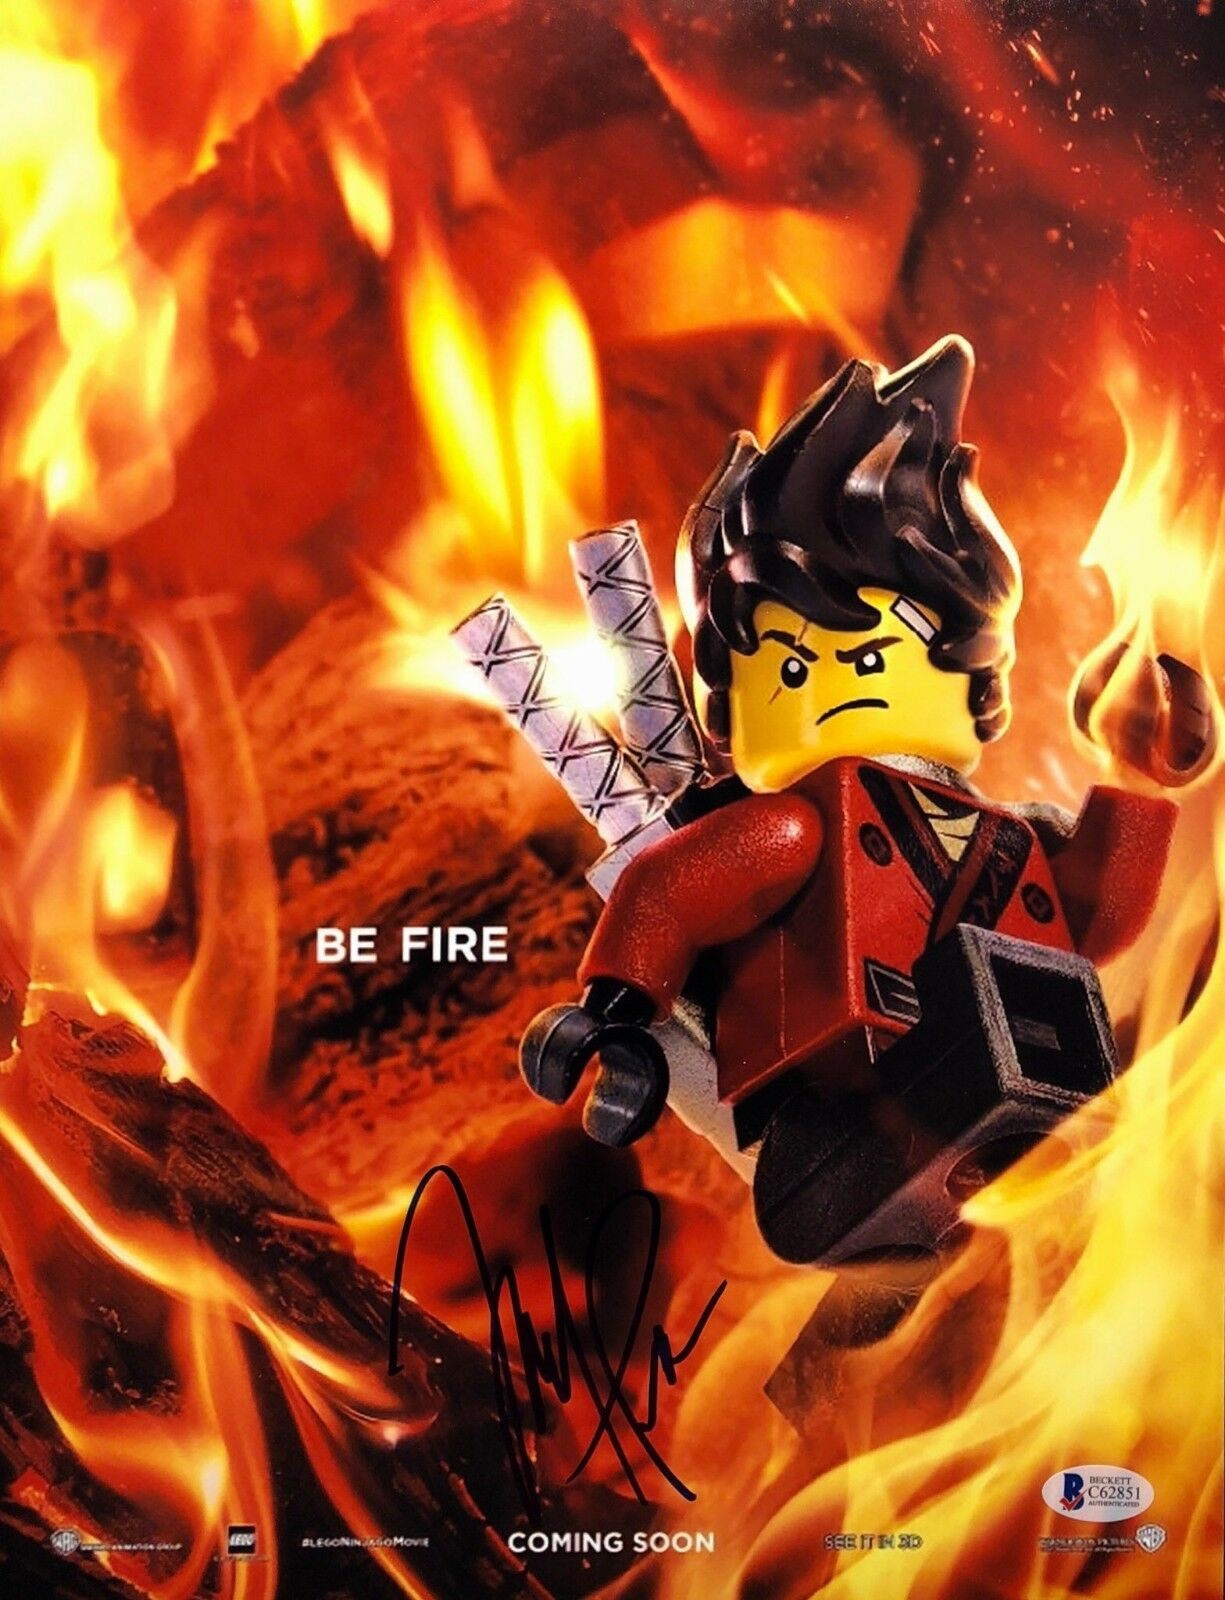 Michael Pena Signed 'Be Fire' Lego Movie 11x14 Photo BAS Beckett C62851